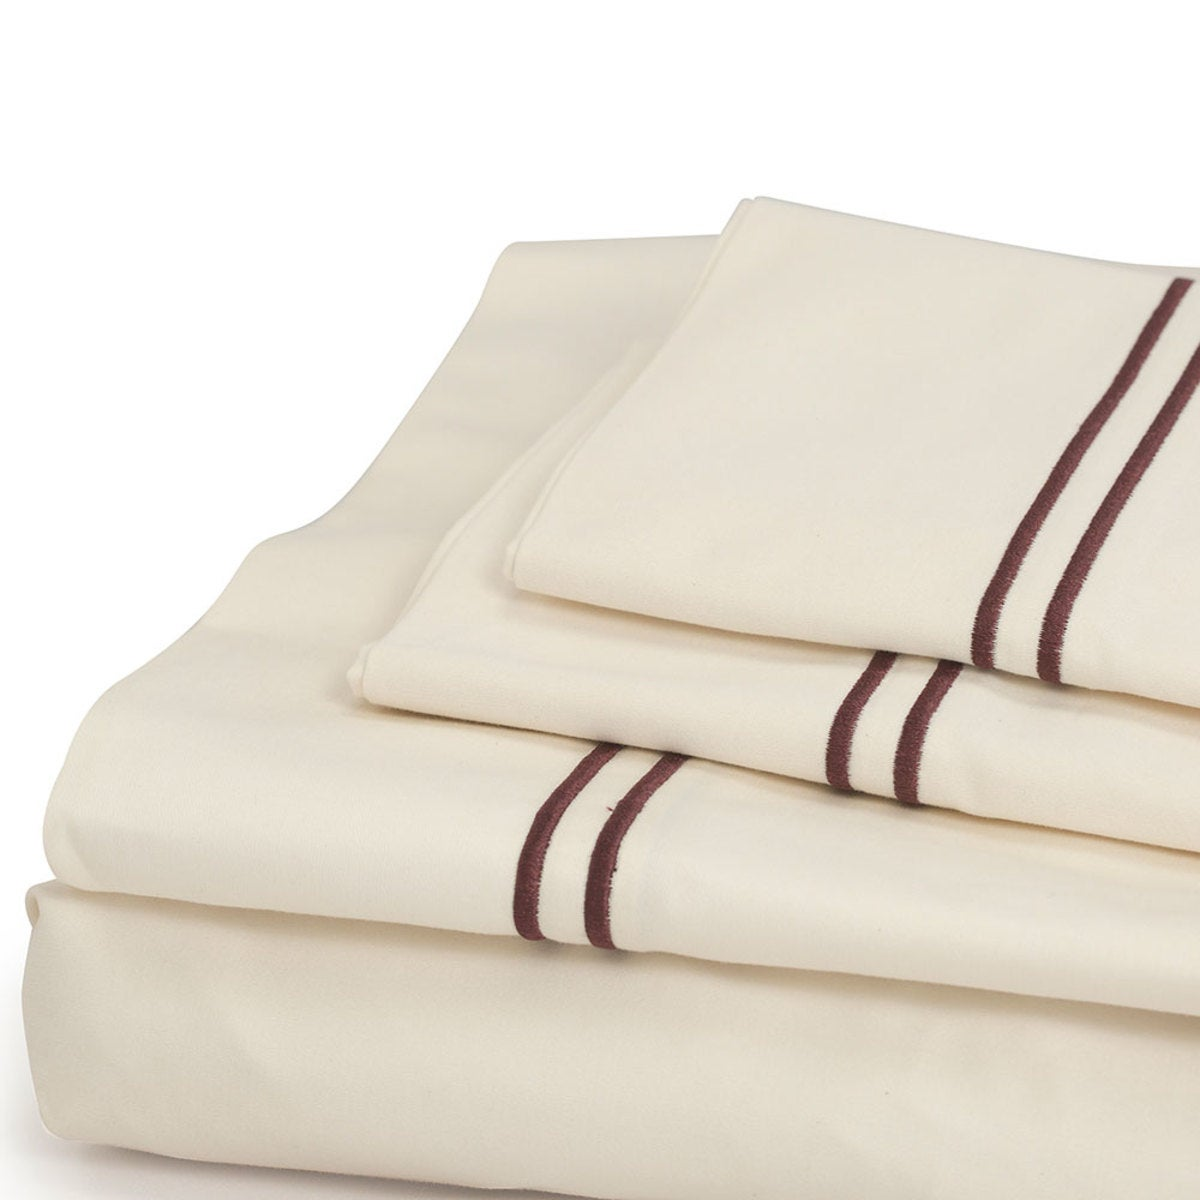 500 Thread Count Sateen Satin Stitch King Sheet Set - Ivory, Port